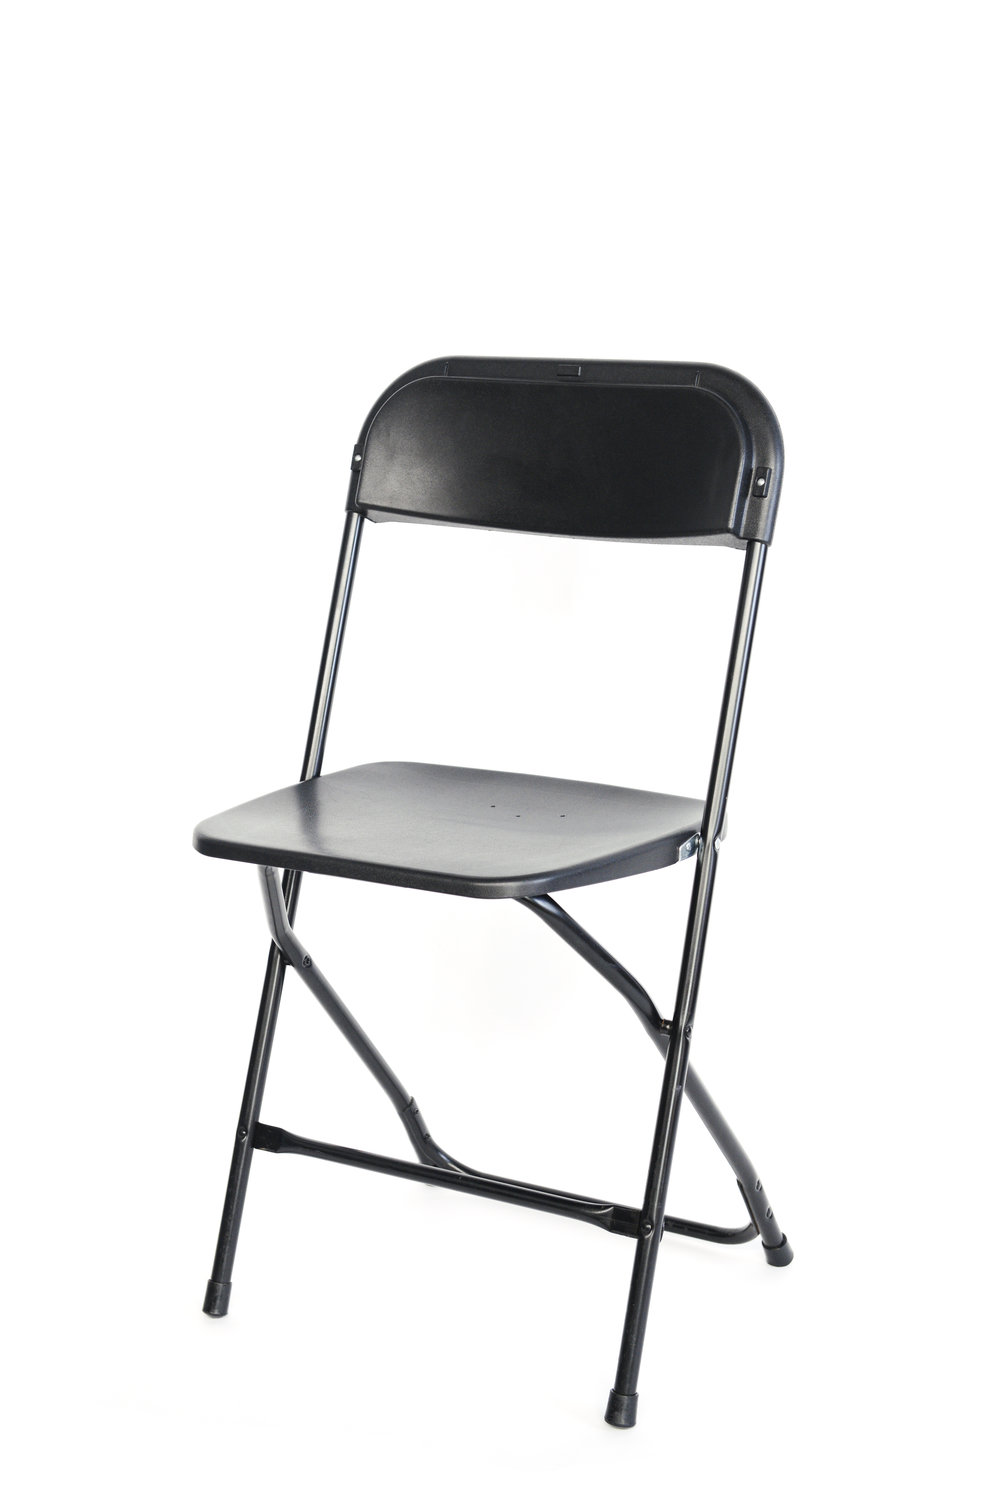 Black folding chairs qty. 30